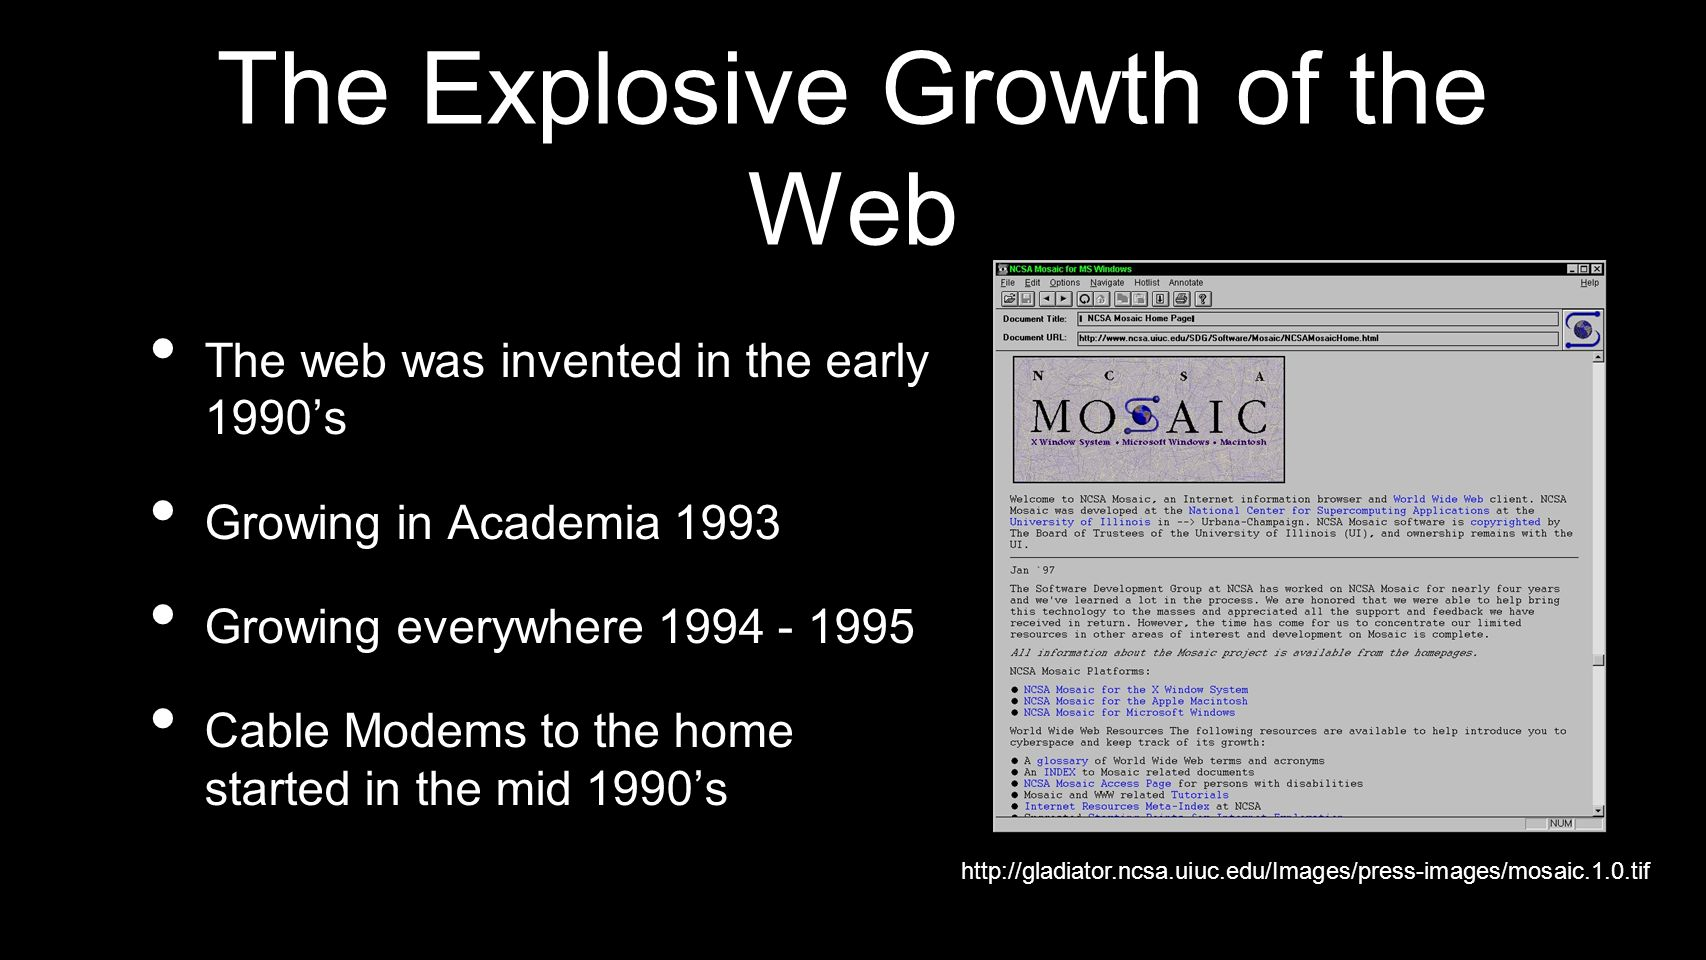 The Explosive Growth of the Web